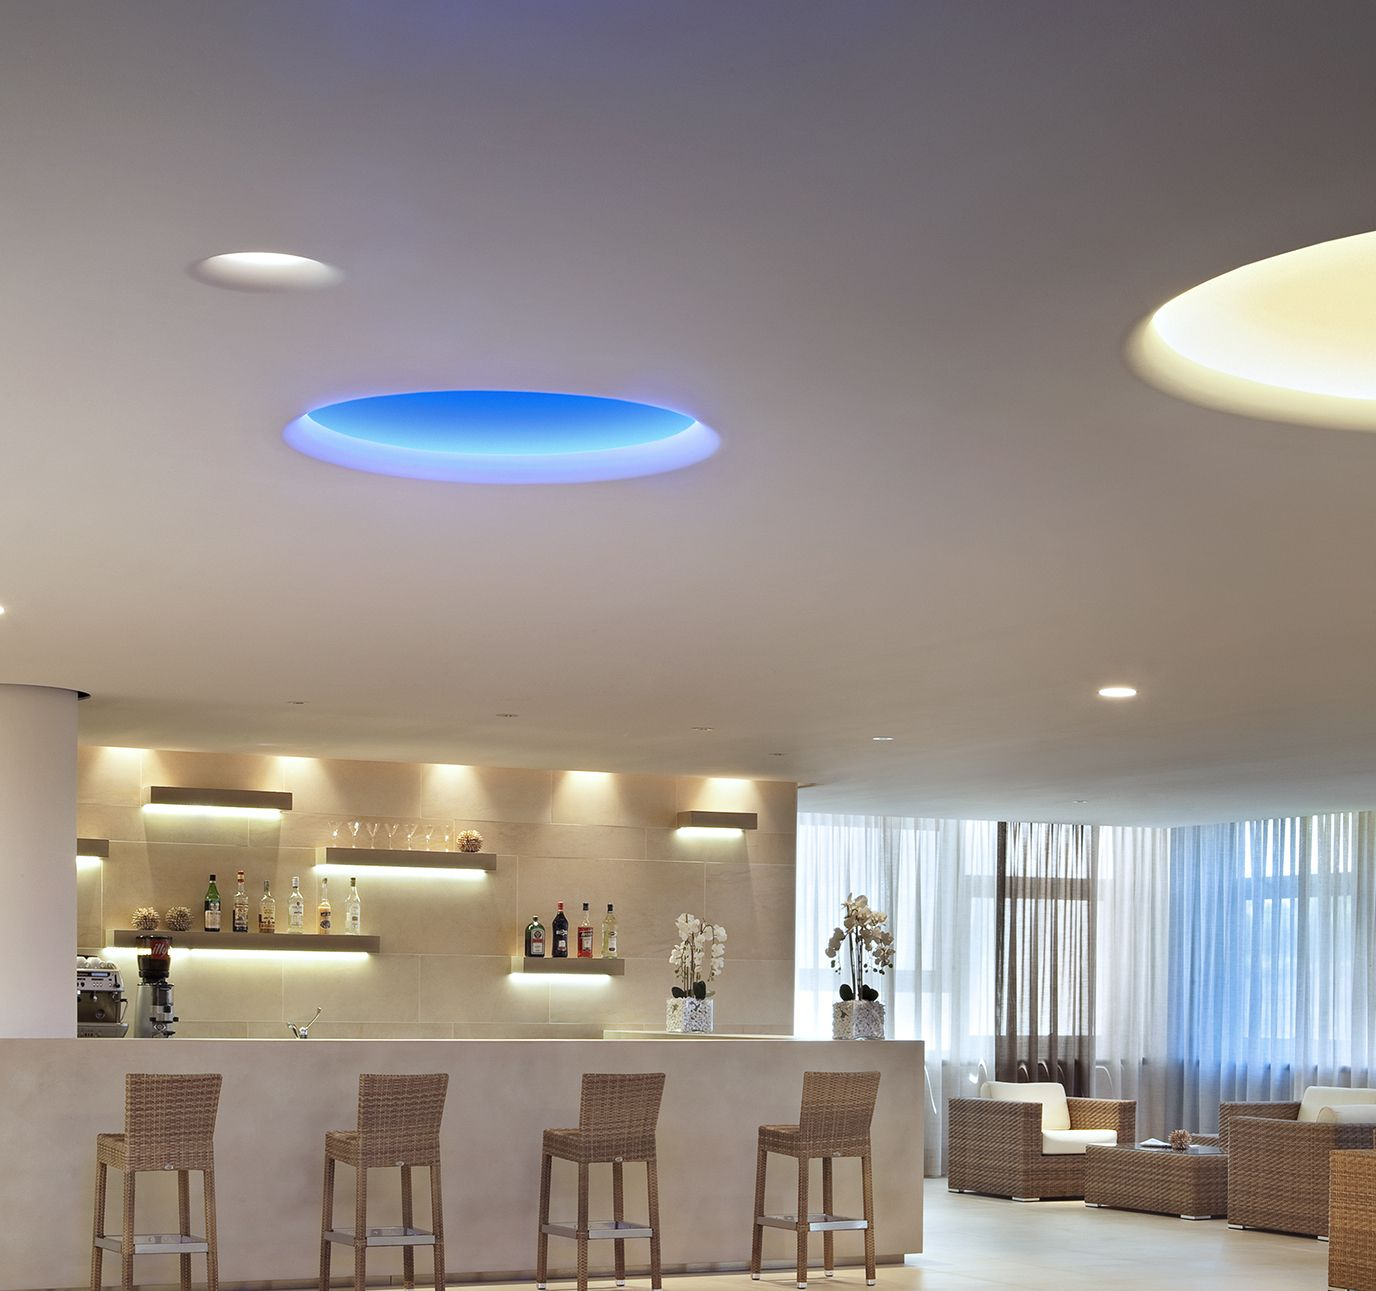 Flos soft architecture architectural lighting products flos integrate modern cove lighting fixtures by flos architectural into your project seamlessly explore the variety of lighting solutions in the uso family arubaitofo Images